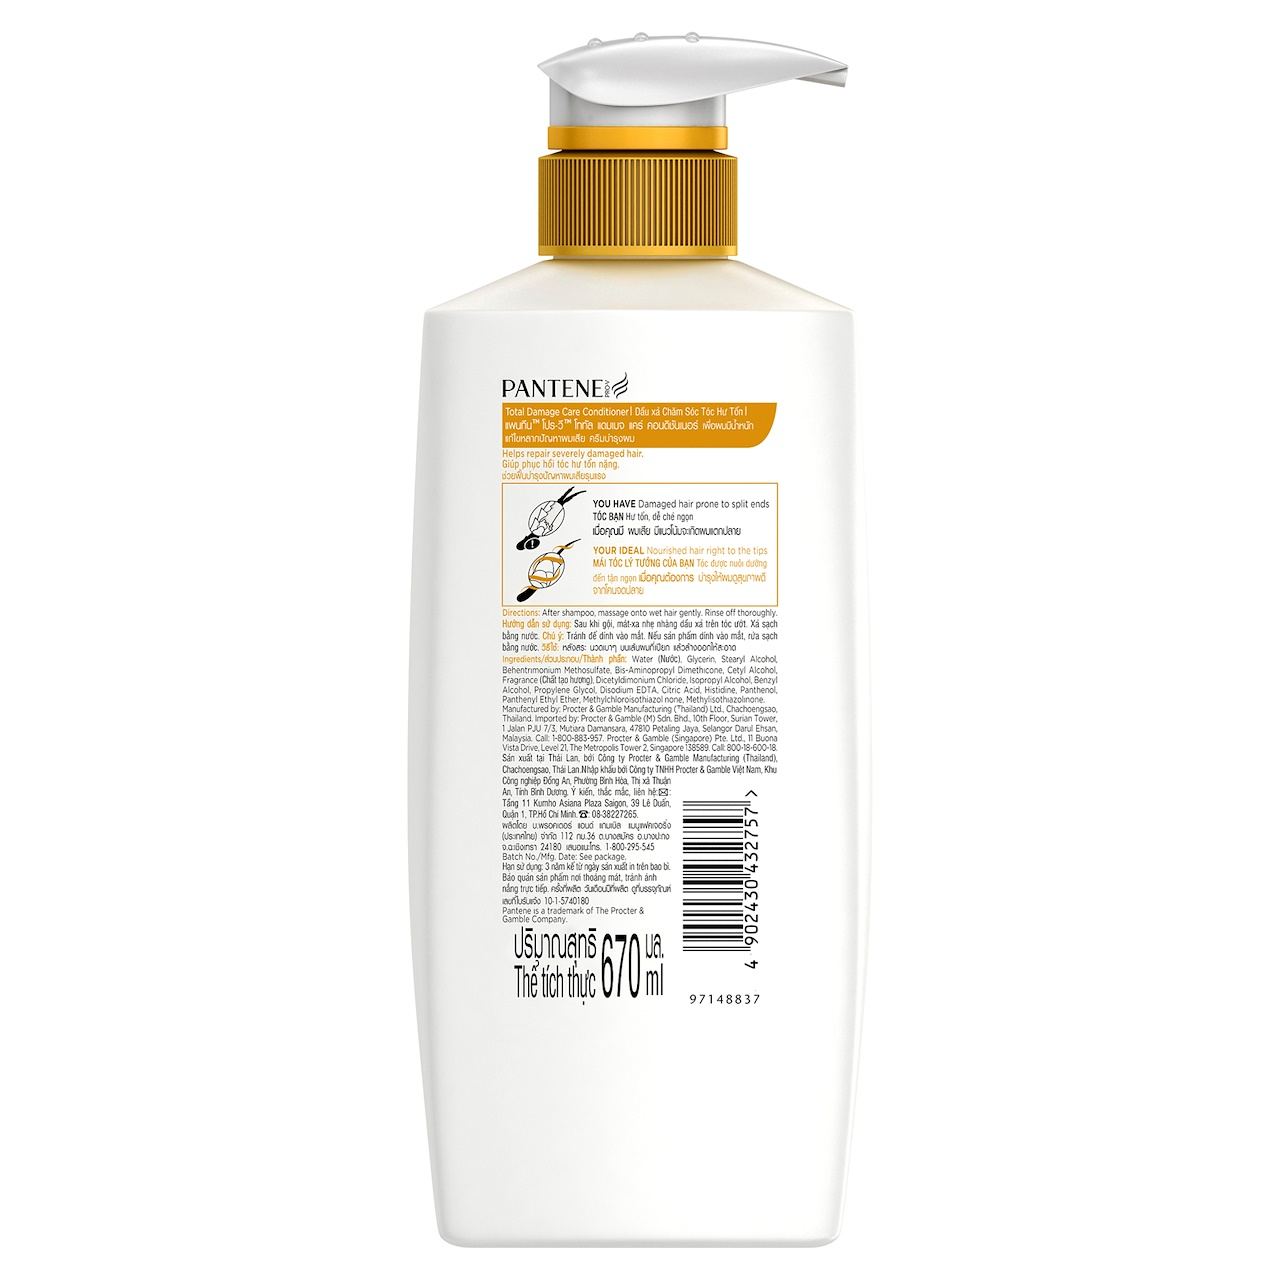 Every Need Want Day Pantene Sampo Total Damage Care 750ml Daily Moisture Repair Conditioner 670ml